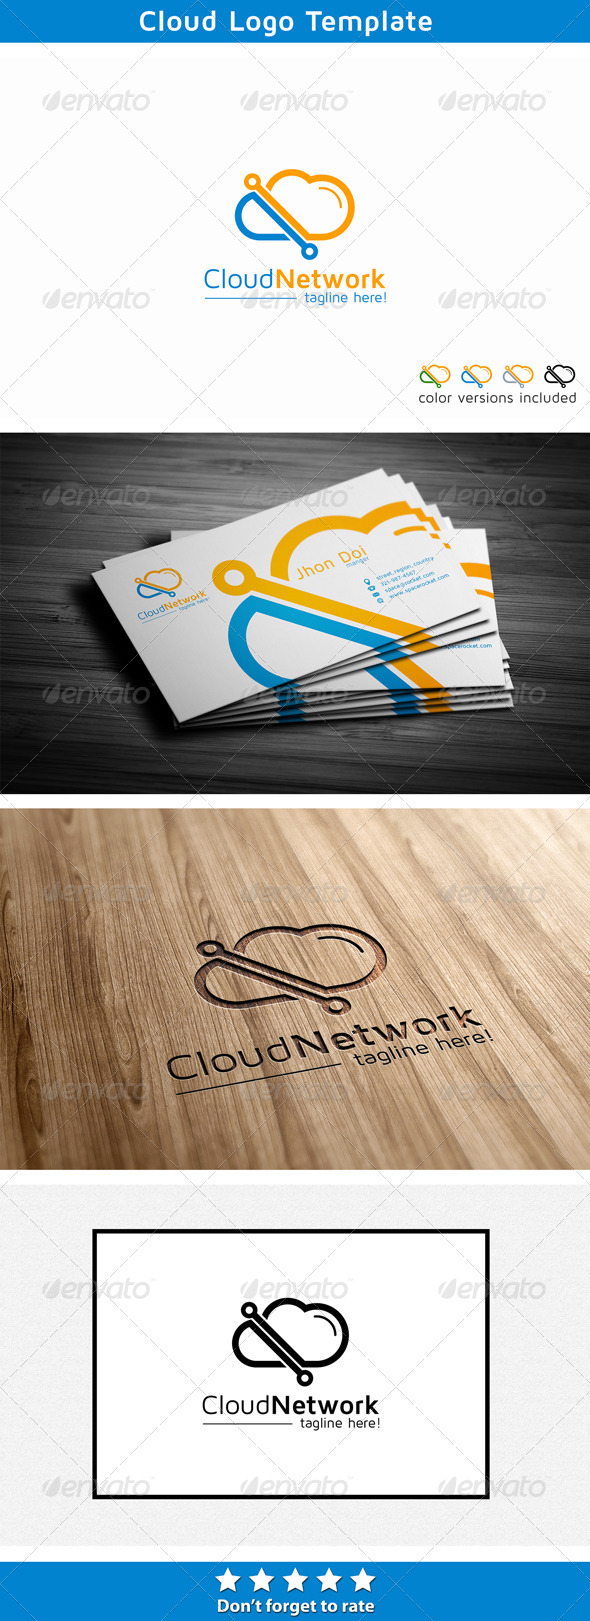 Cloud Link - Symbols Logo Templates